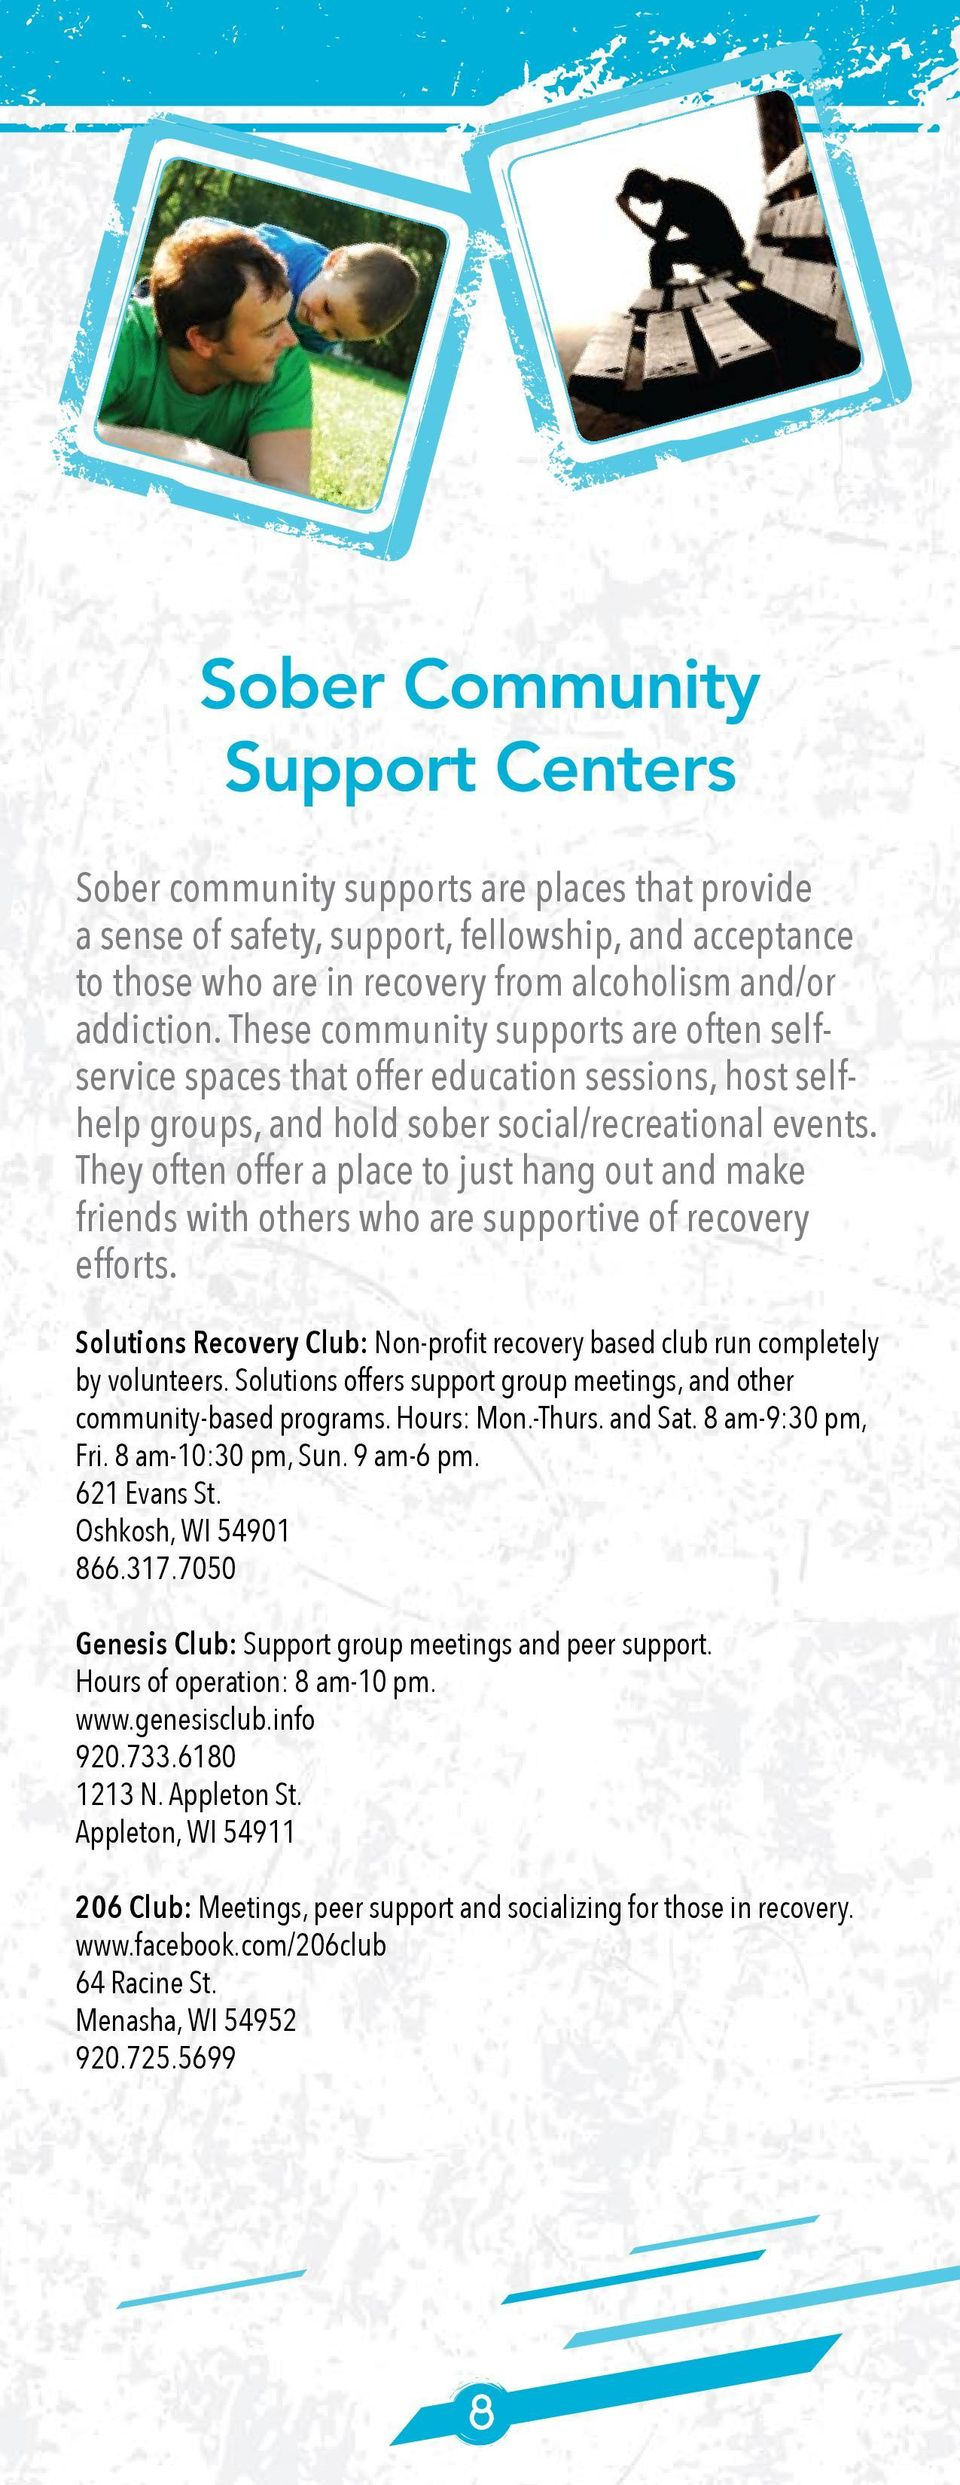 They often offer a place to just hang out and make friends with others who are supportive of recovery efforts. Solutions Recovery Club: Non-profit recovery based club run completely by volunteers.